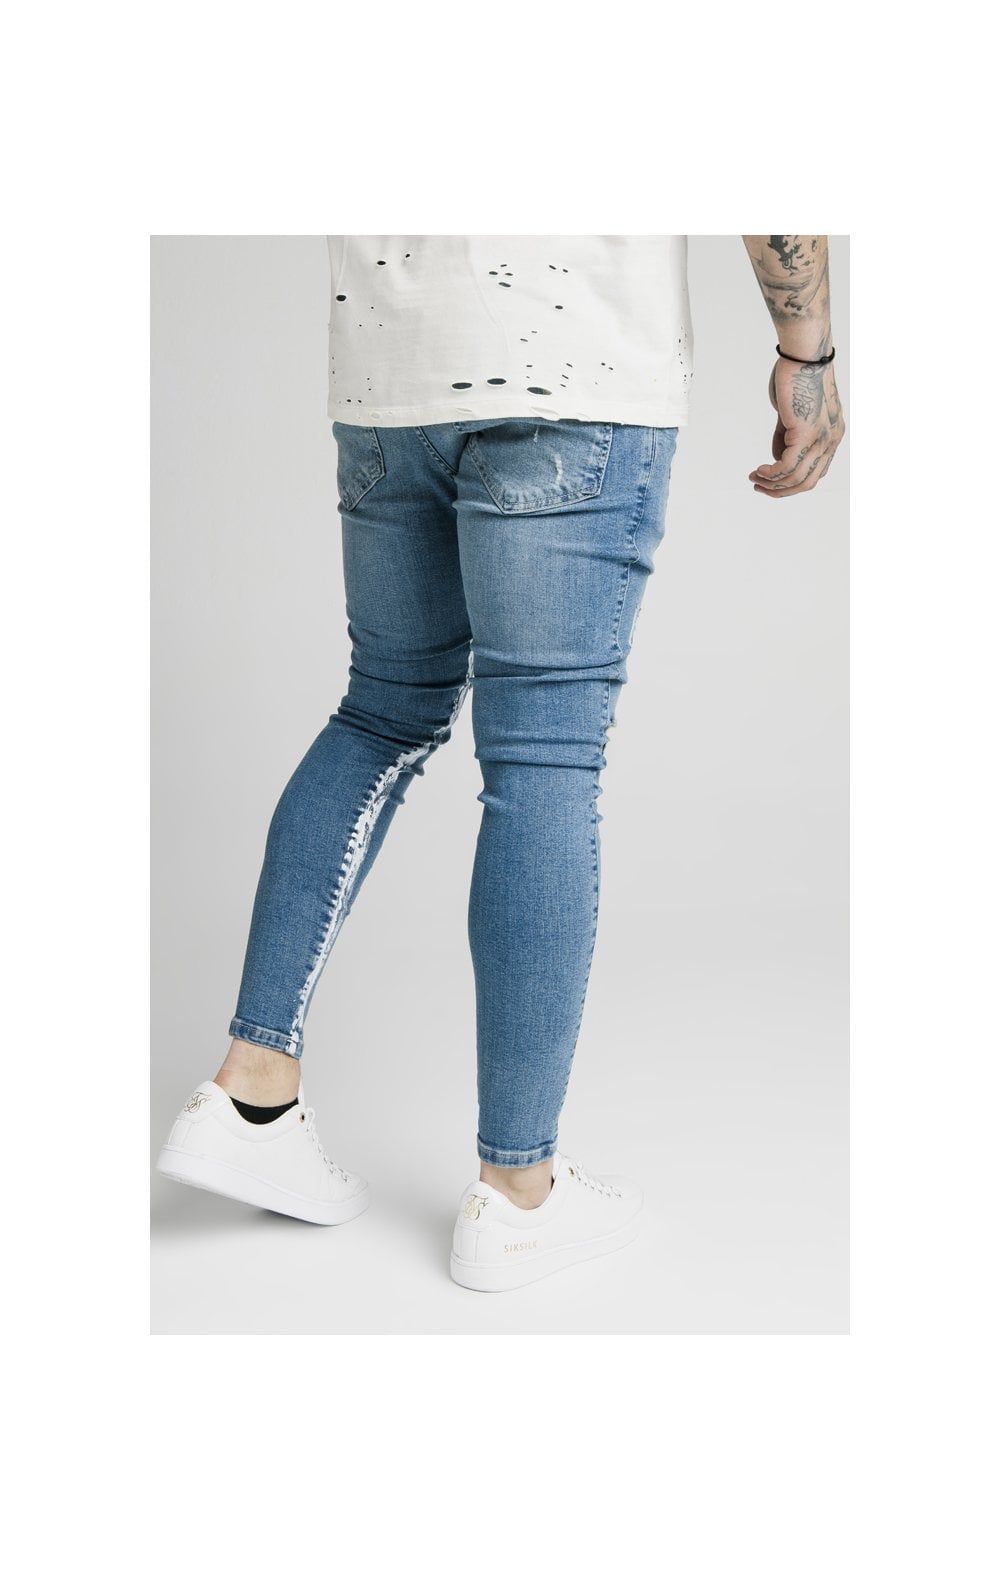 SikSilk Skinny Distressed Paint Stripe Denims - Midstone & White (2)